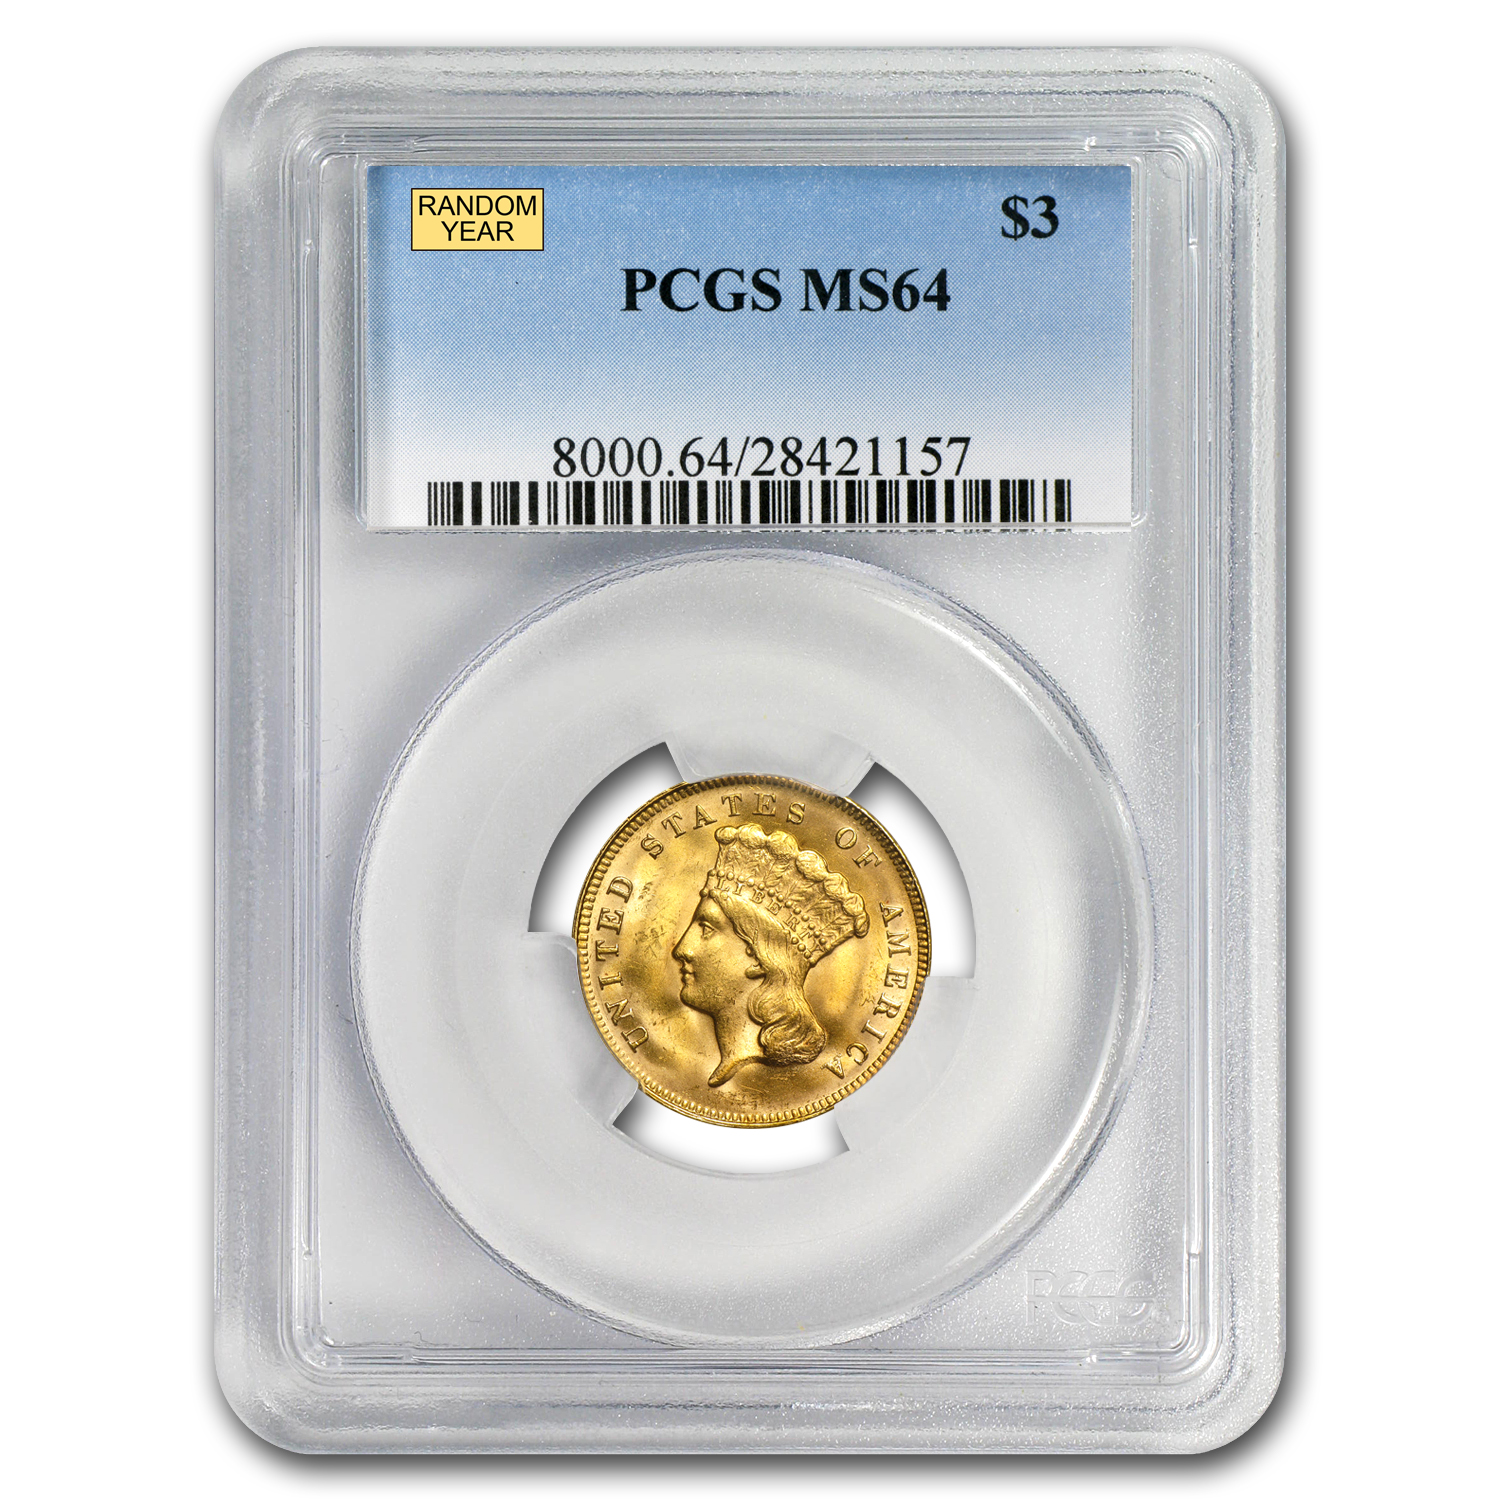 $3 Gold Princess MS-64 NGC/PCGS - Random Year